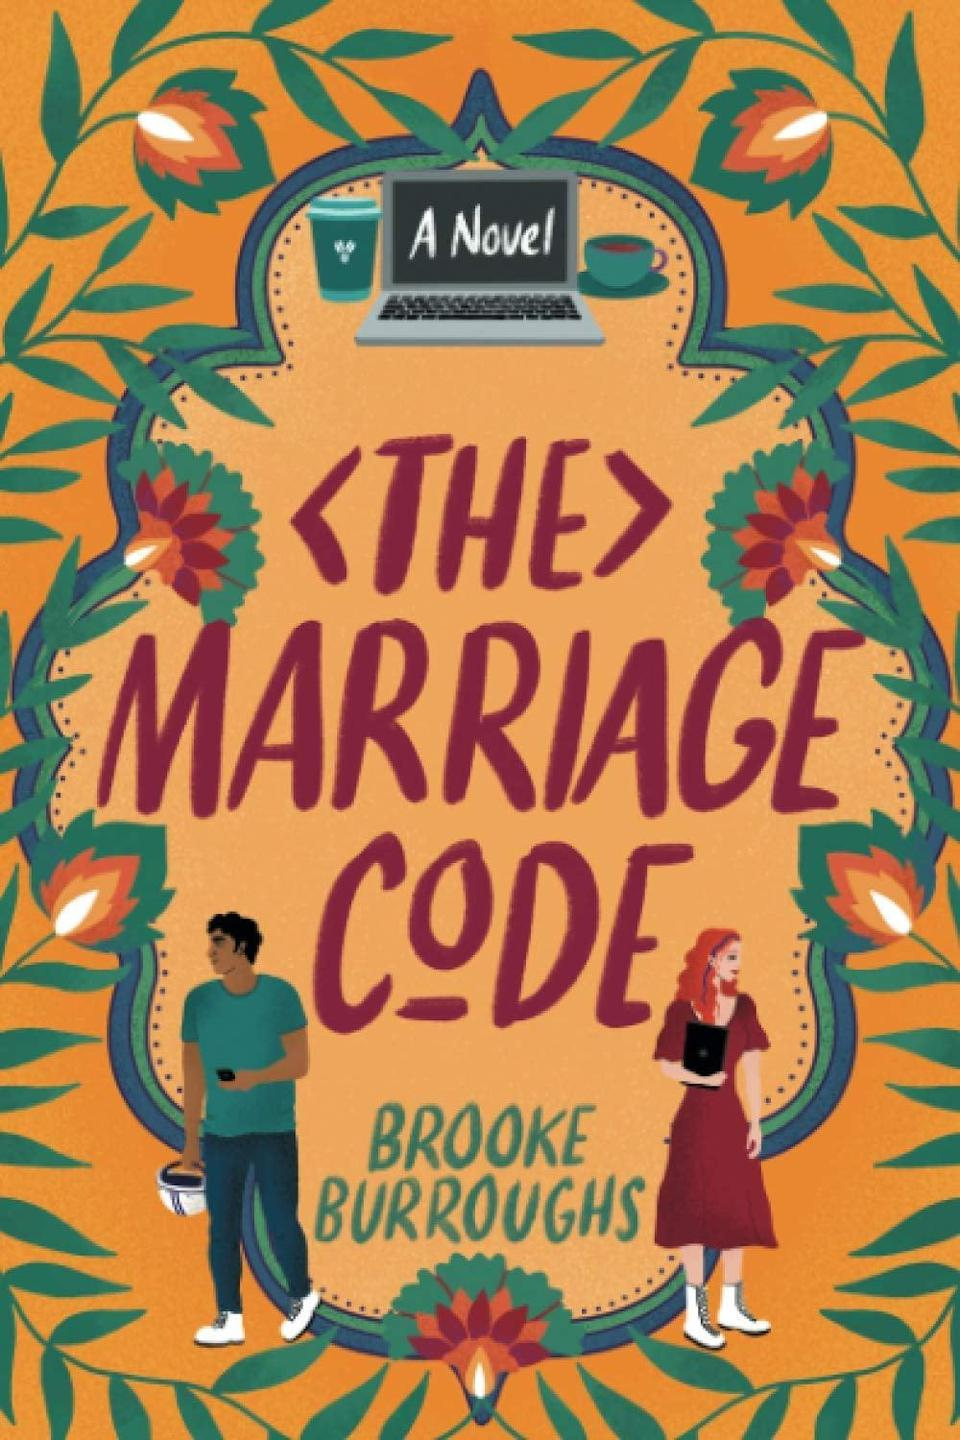 """<p>Brooke Burroughs's <span><strong>The Marriage Code</strong></span> has it all: an enemies-to-lovers plot, a heroine in a STEM field, and an <a href=""""https://www.popsugar.com/entertainment/will-there-be-emily-in-paris-season-2-47837487"""" class=""""link rapid-noclick-resp"""" rel=""""nofollow noopener"""" target=""""_blank"""" data-ylk=""""slk:Emily in Paris""""><strong>Emily in Paris</strong></a>-style relocation subplot that finds the book's central characters moving to Bangalore. At the heart of the story is Emma, who needs to get her co-worker Rishi to join her team after she lands the promotion he was passed over for, but in order to convince him to join her, she'll have to write a code to help him please his parents by finding the perfect wife. </p> <p><em>Out Jan. 1</em></p>"""